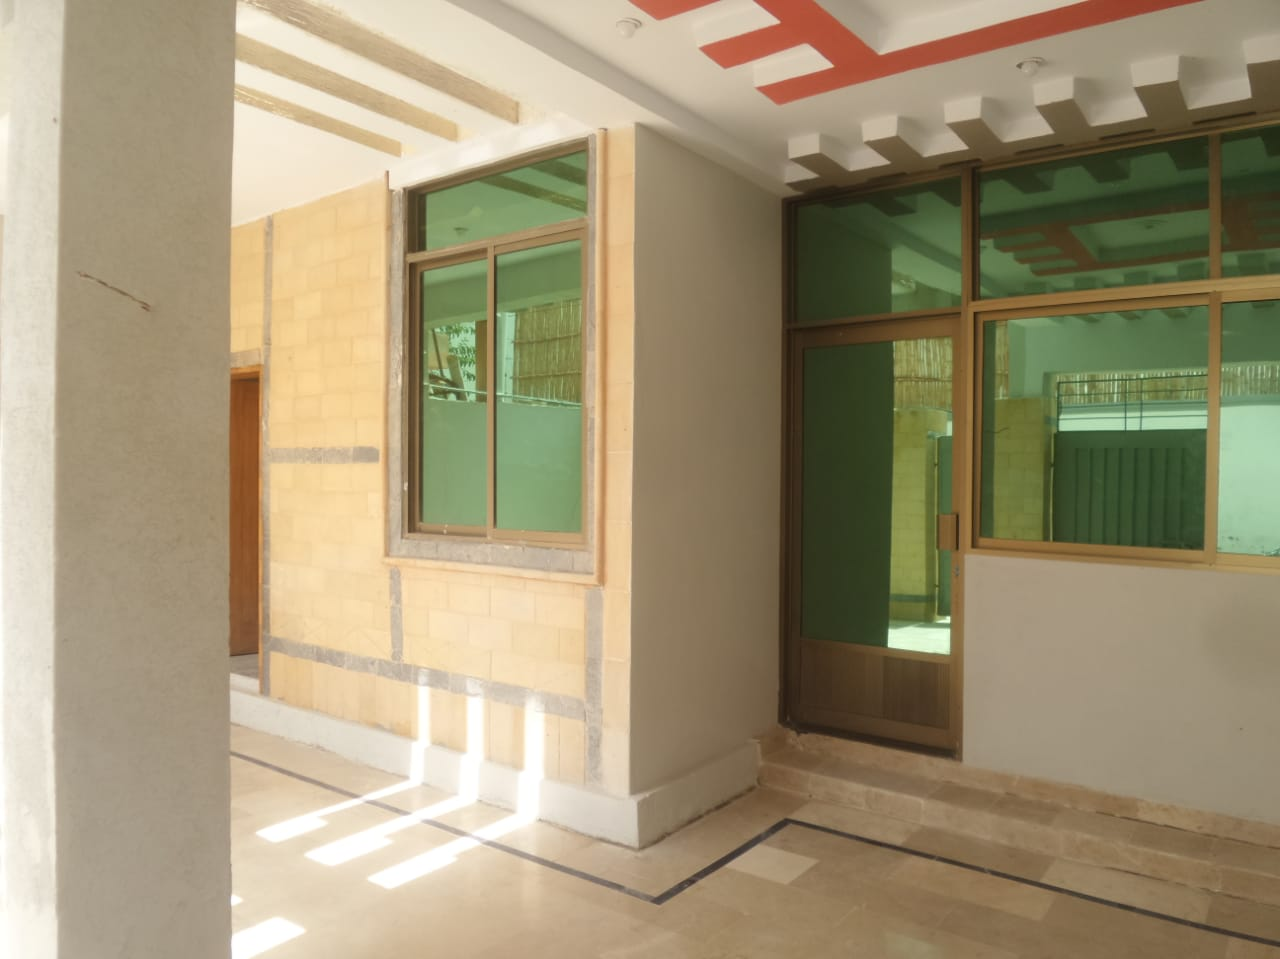 House for sale at samungli road eman city.